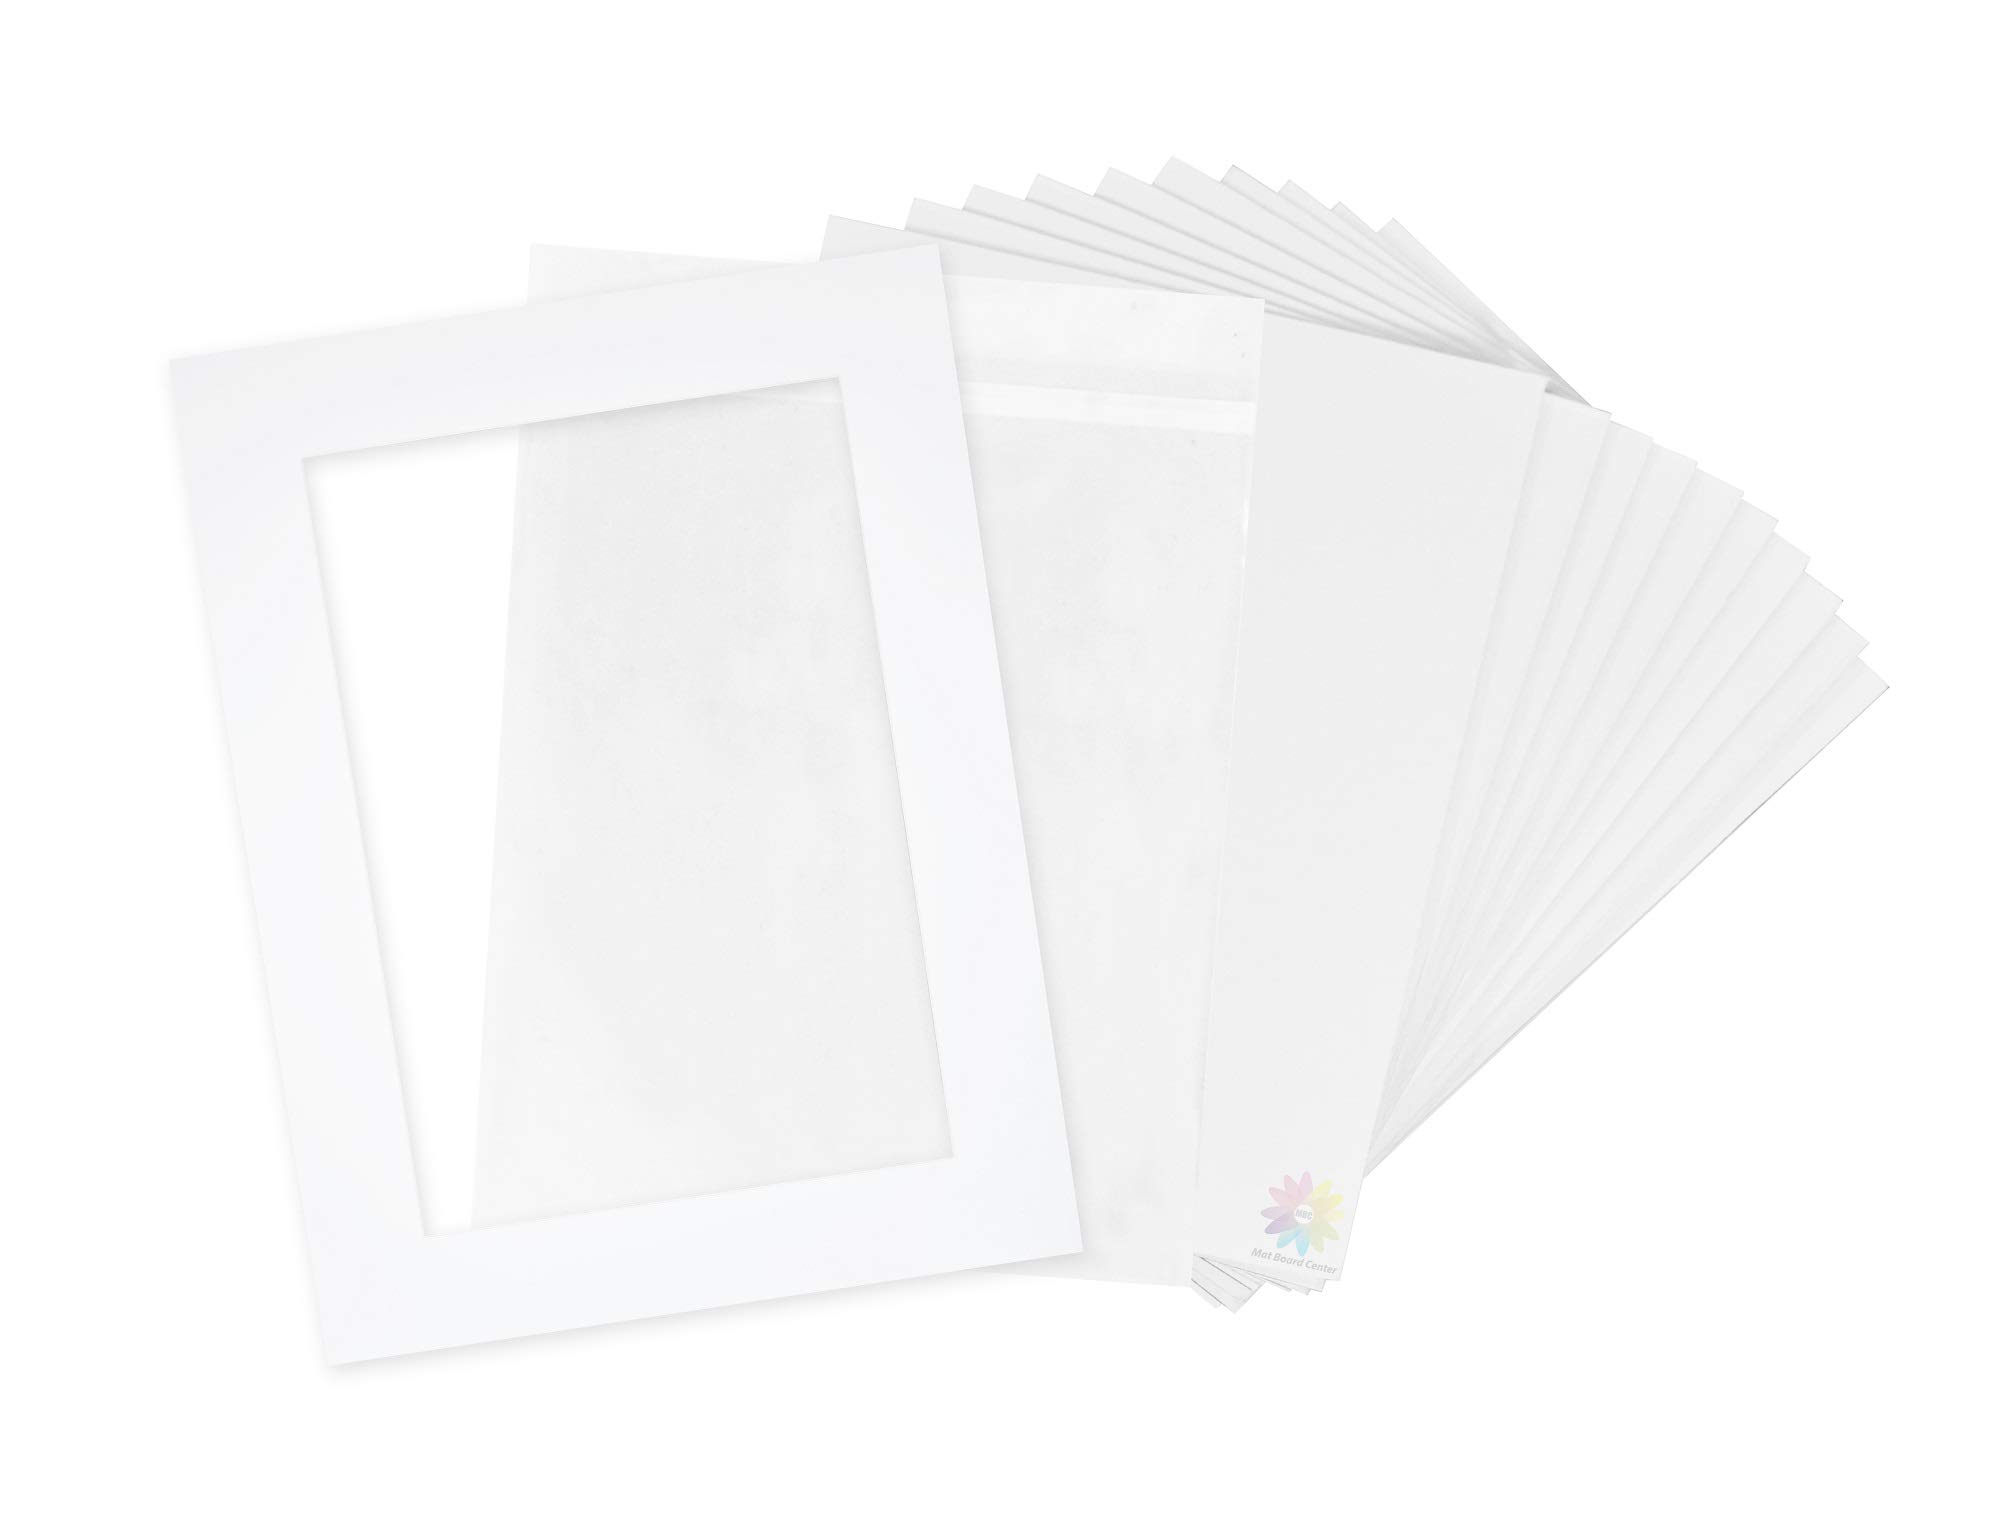 Pack of 10-18x24 Pre-Cut 13x19 - White Mats - for Pictures, Photos, Framing - Kit Includes: 10 White Backboards and 10 Clear Bags - Acid Free, 4-ply Thickness, White Core by MBC MAT BOARD CENTER